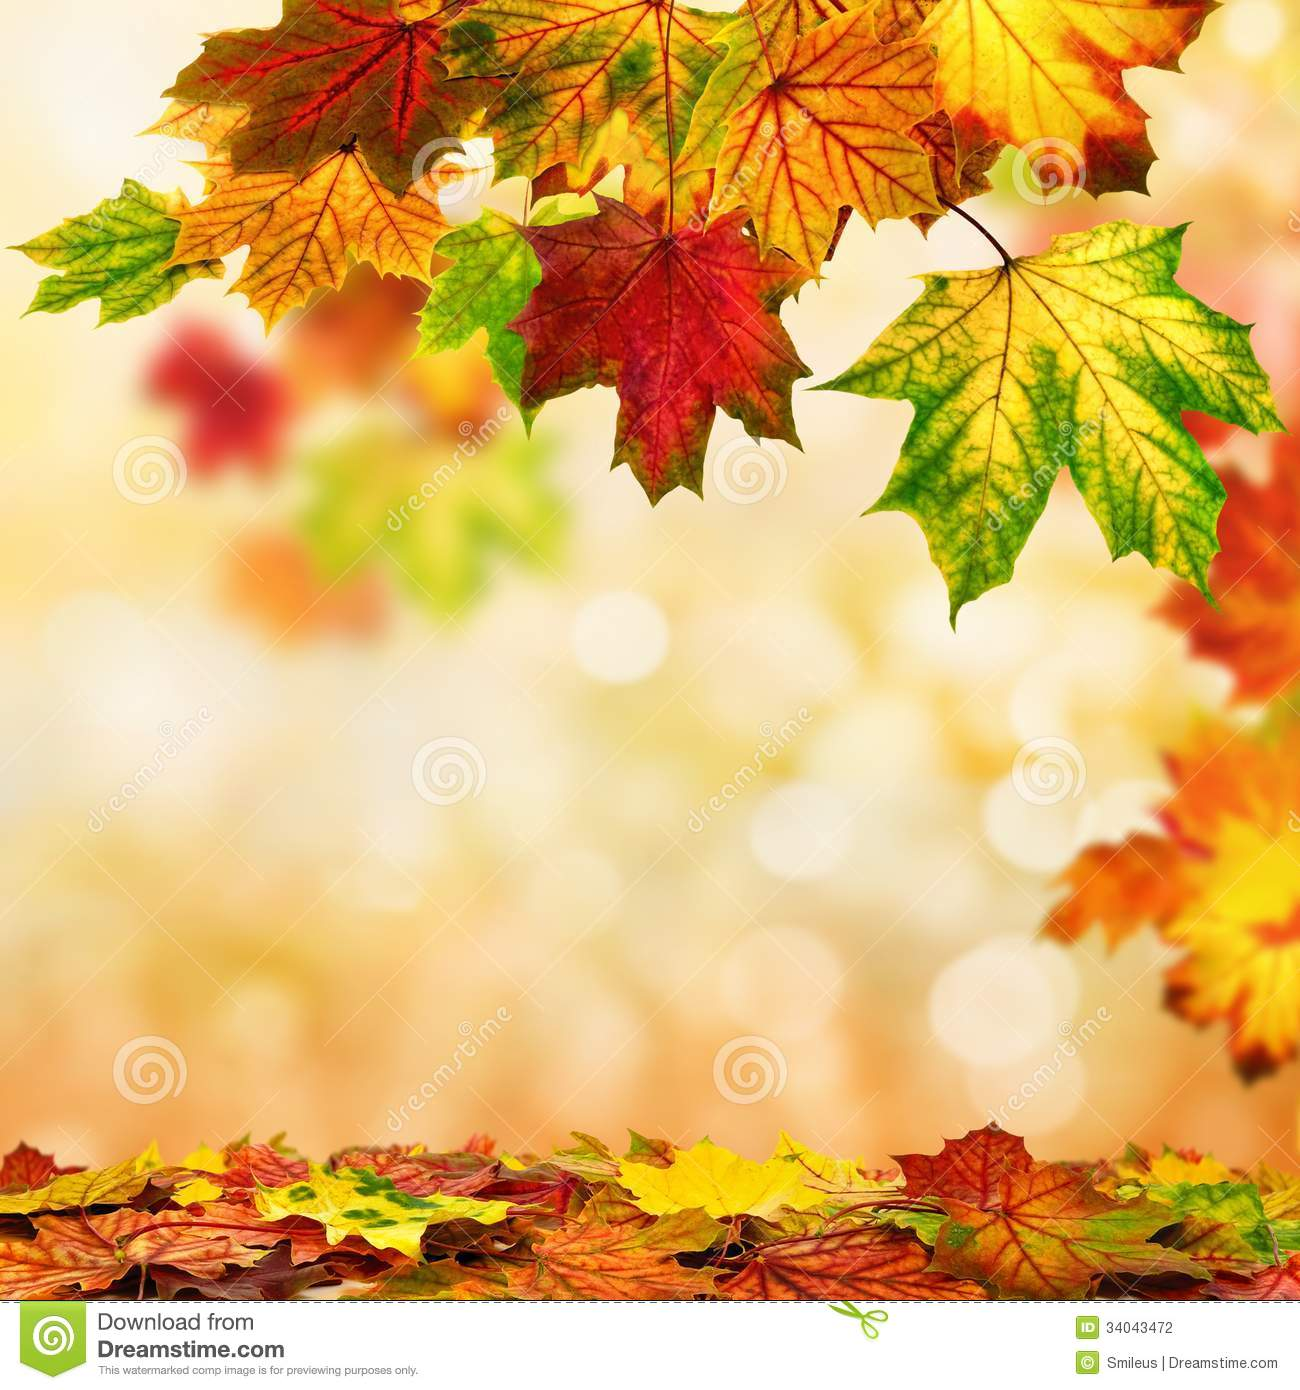 Free Scenic Fall Wallpaper Autumn Bokeh Background Bordered With Leaves Stock